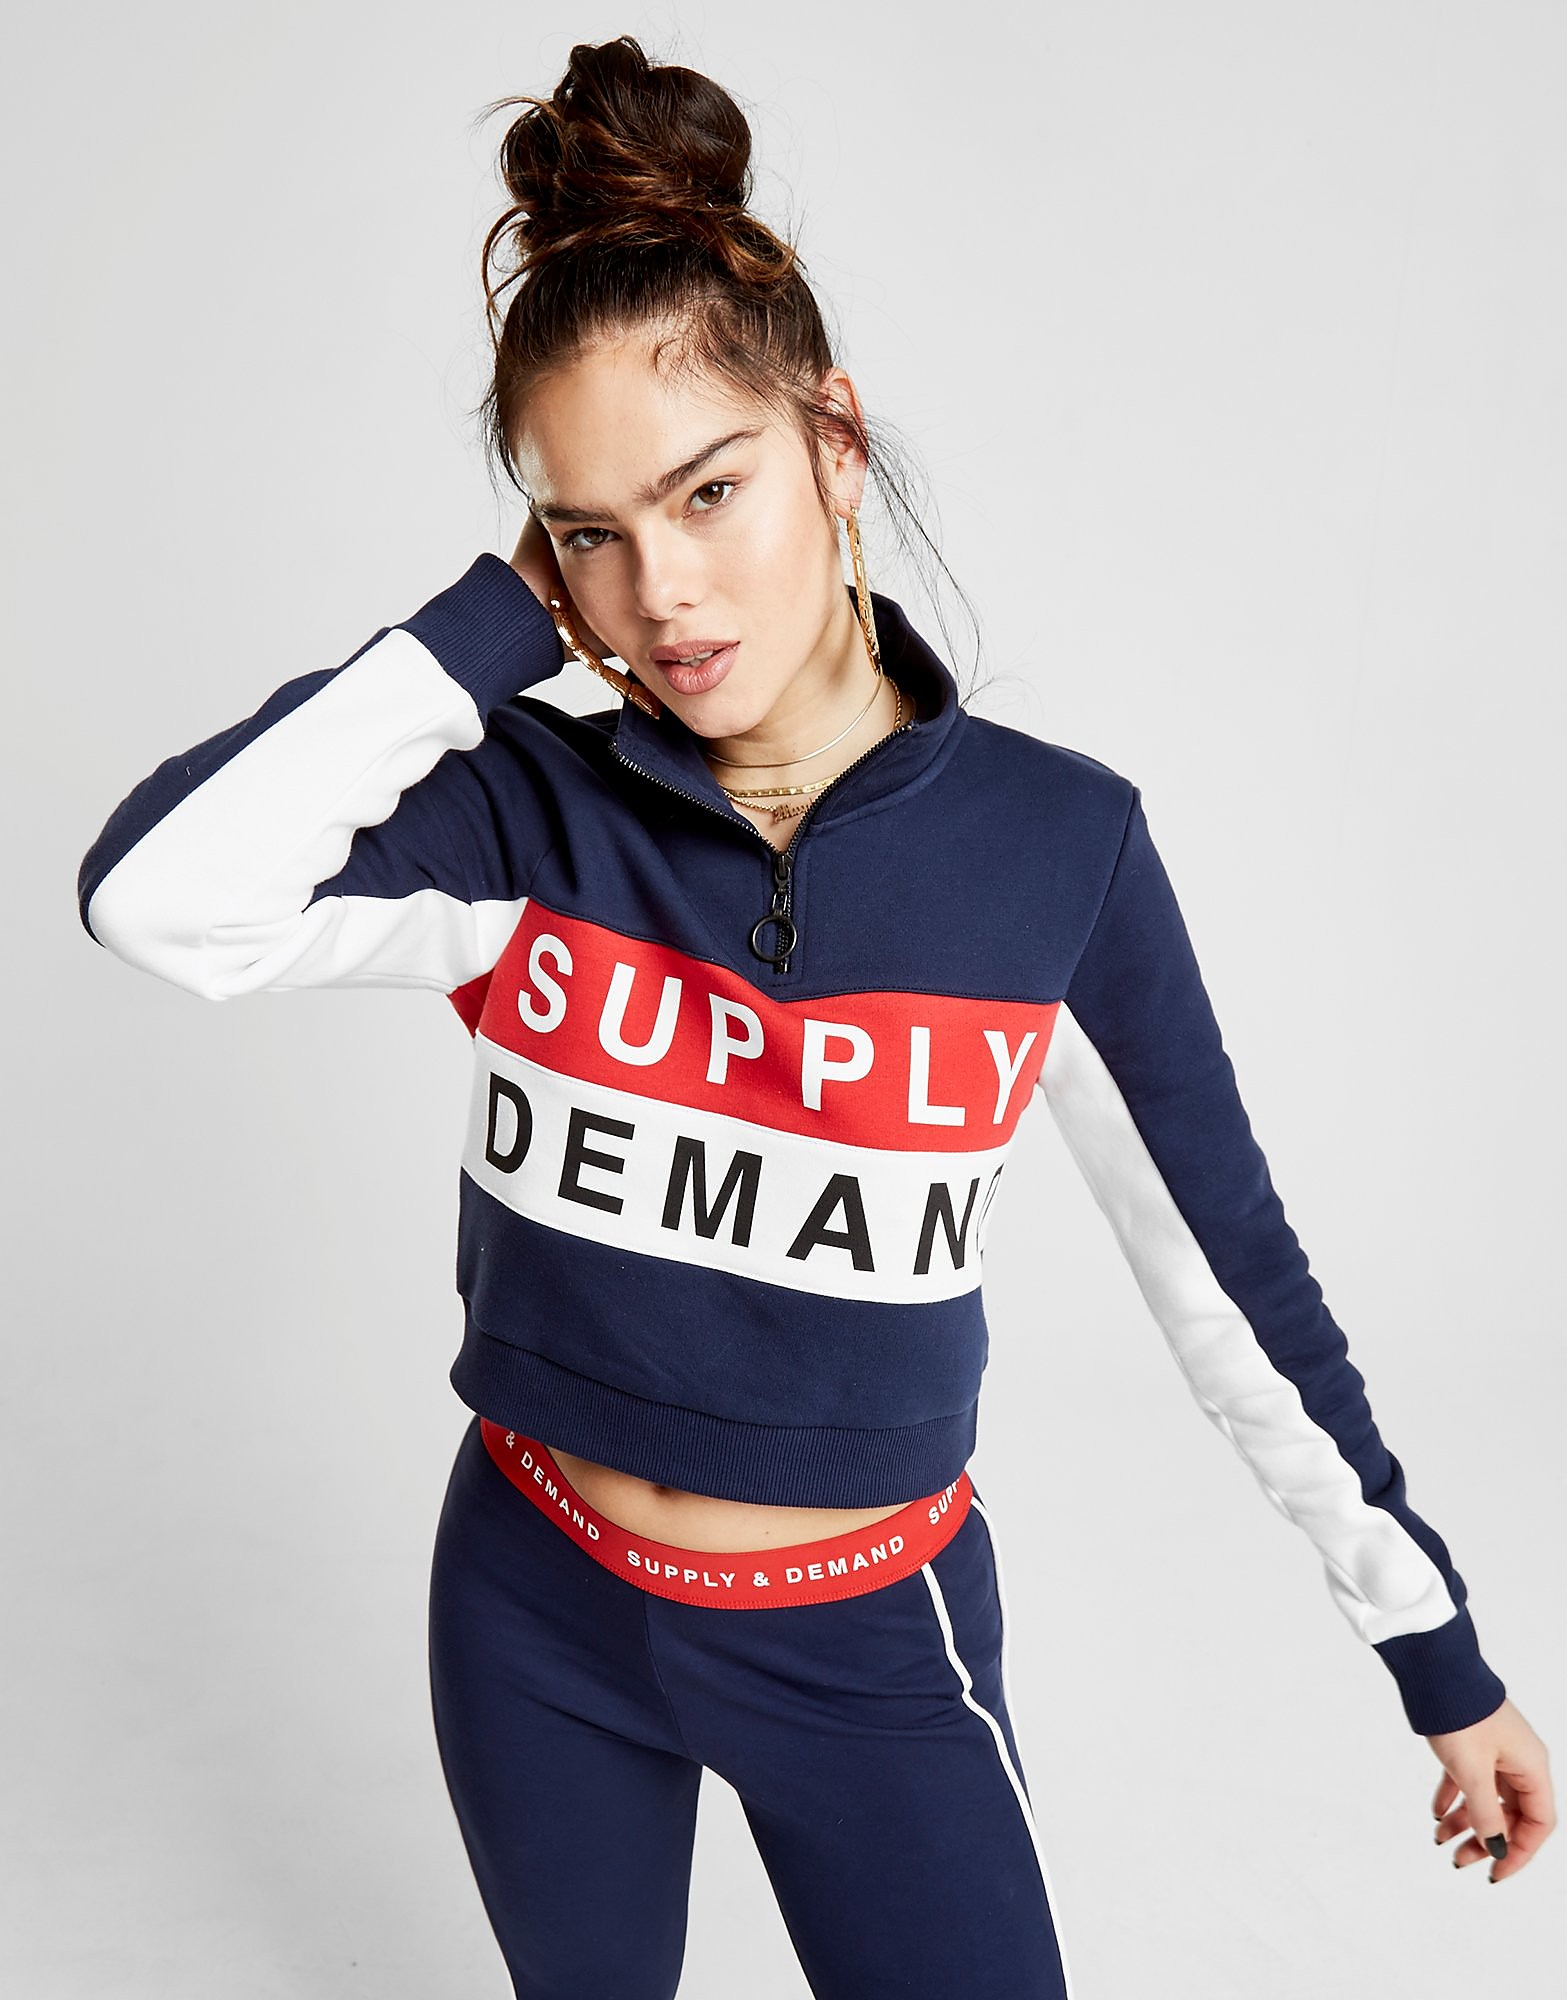 Supply & Demand Retro 1/2 Zip Crew Sweatshirt